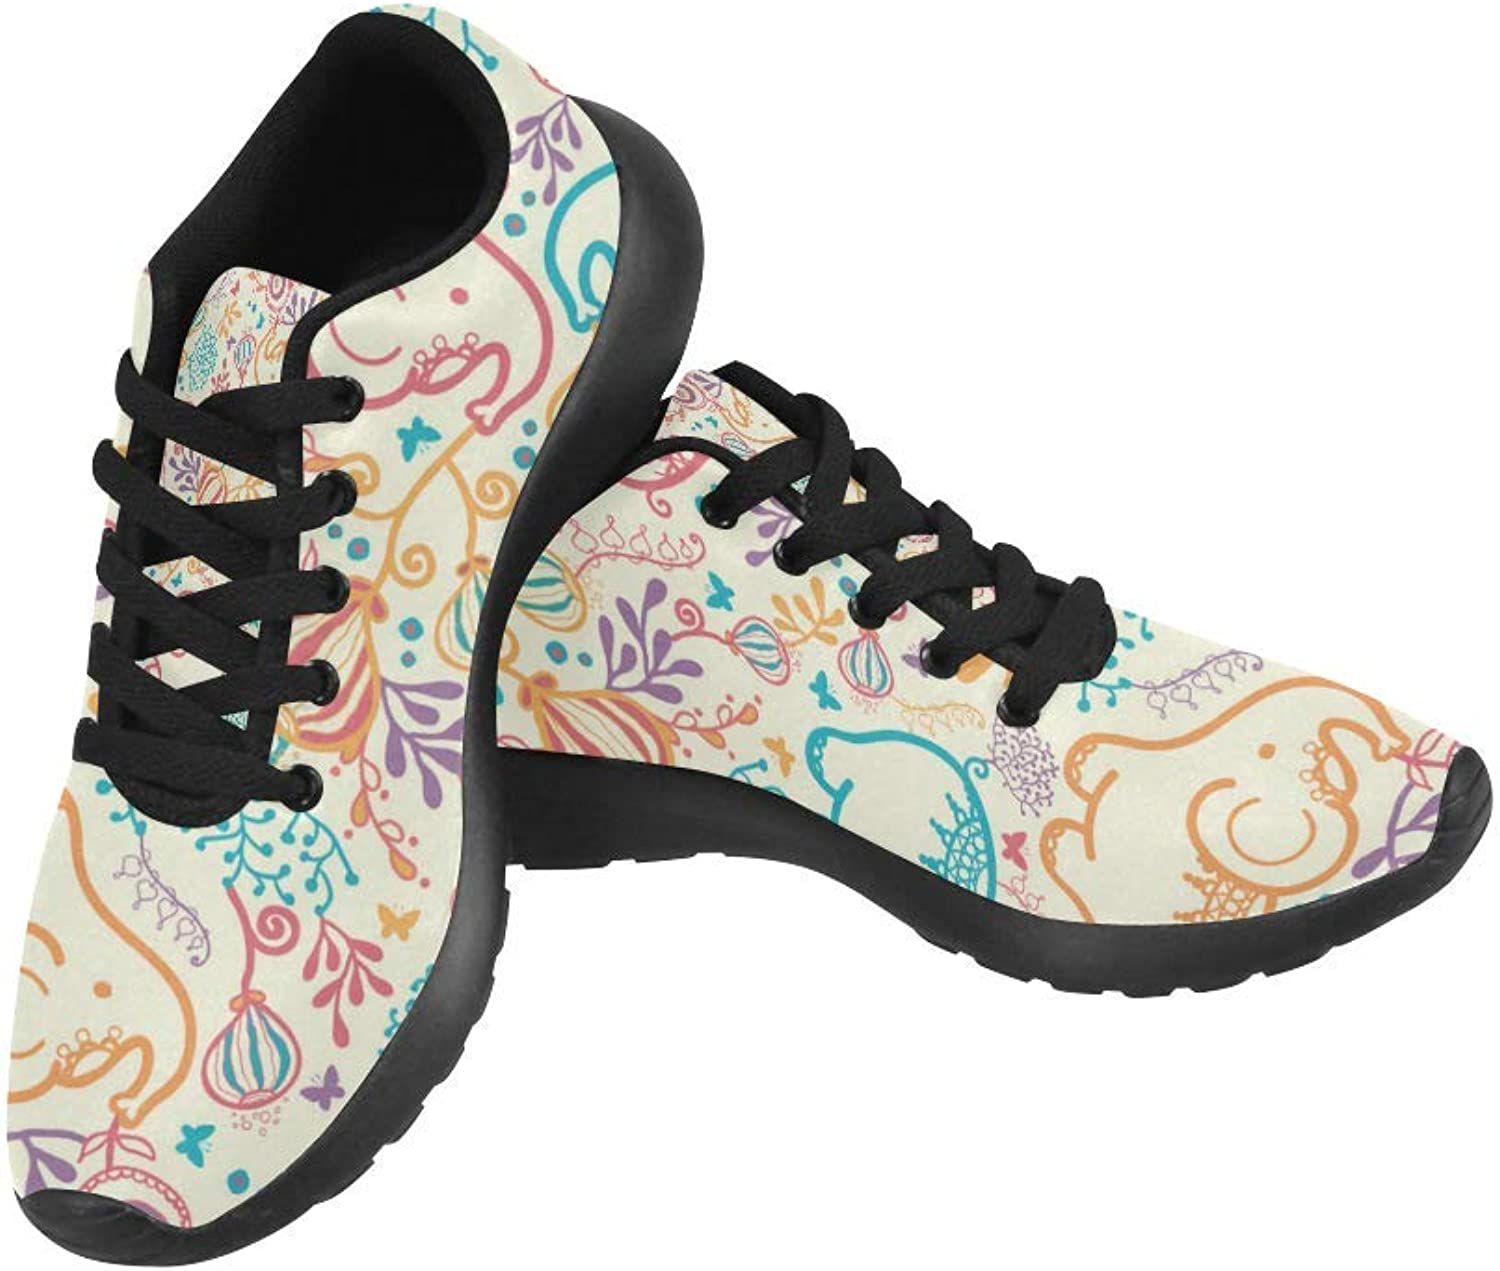 InterestPrint Elephants with Flowers Print on Women's Running shoes Casual Lightweight Athletic Sneakers US Size 6-15